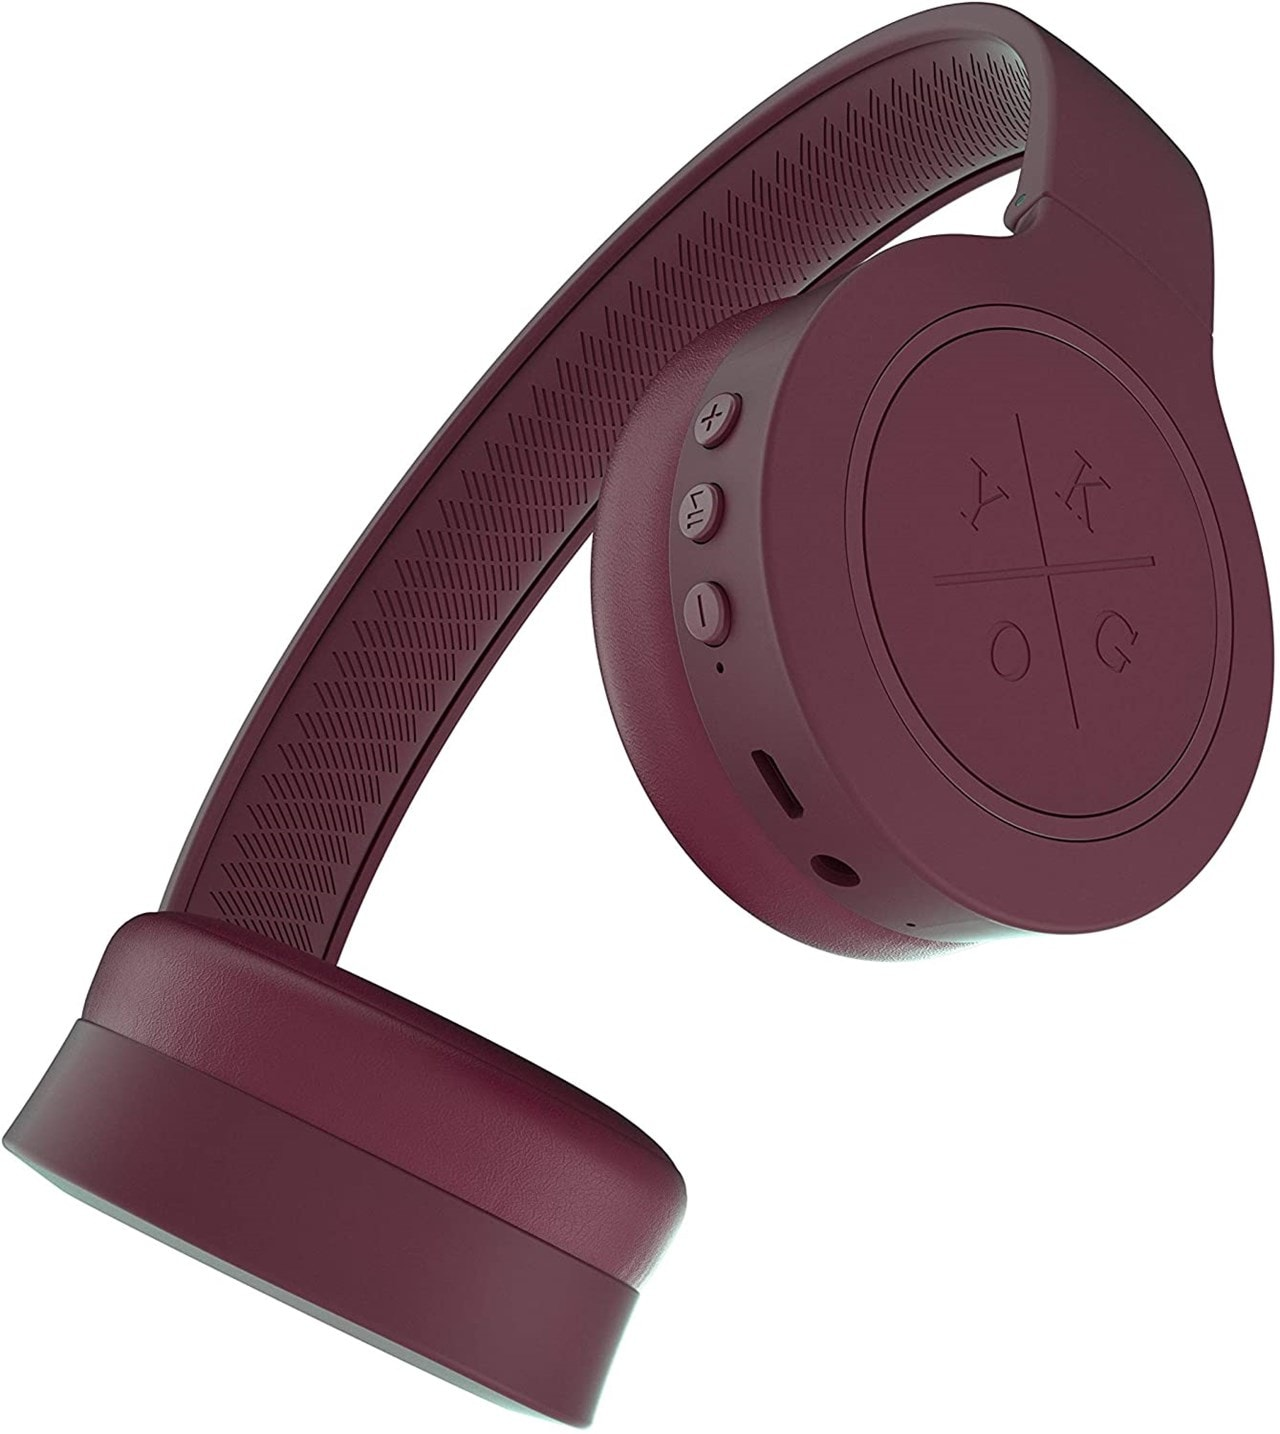 Kygo A4/300 Burgundy Bluetooth Headphones - 3